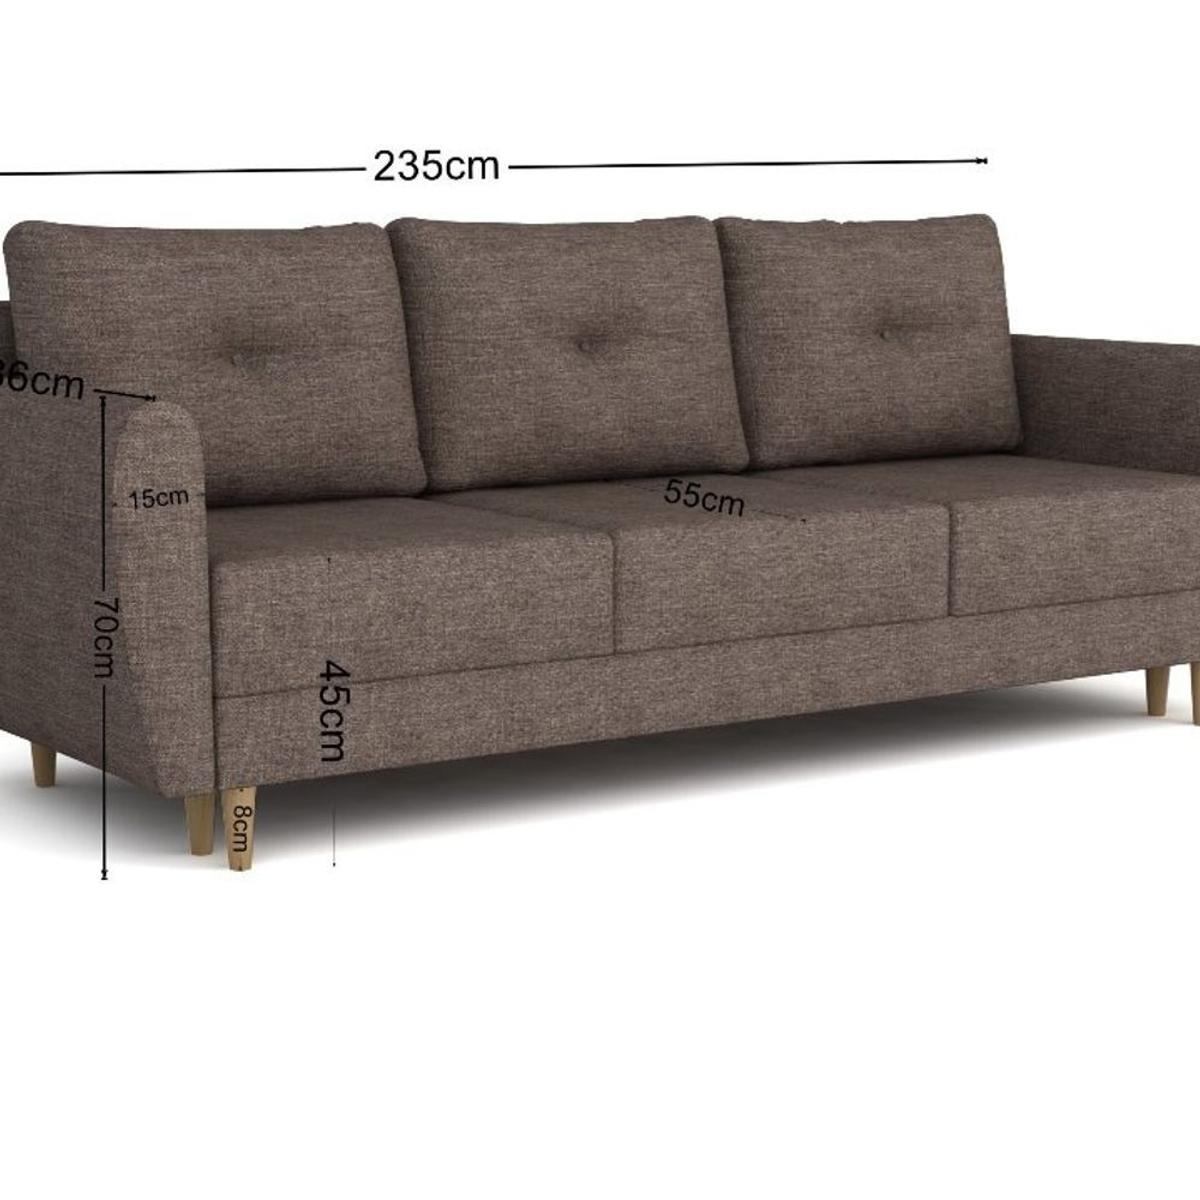 Surprising New Sofa Bed Free Local Delivery In Sw6 London For 389 00 Cjindustries Chair Design For Home Cjindustriesco